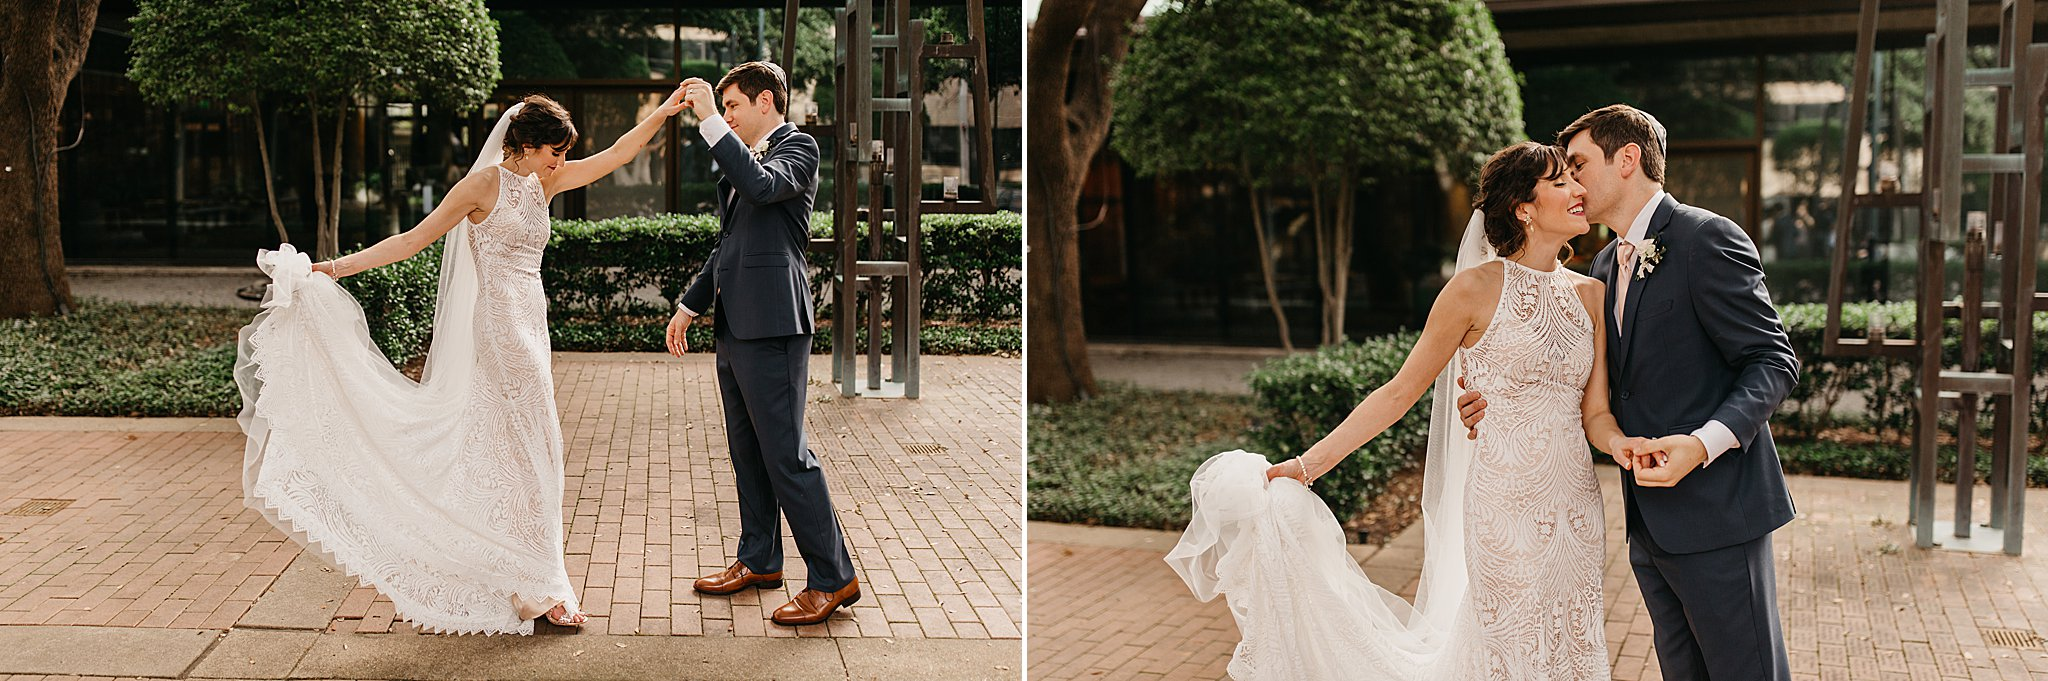 Wilderlove Co_Wedding Photographer_Industrial Wedding_Jewish Wedding_Dallas Texas Wedding_Brake & Clutch Warehouse_North Texas Photographer_0060.jpg